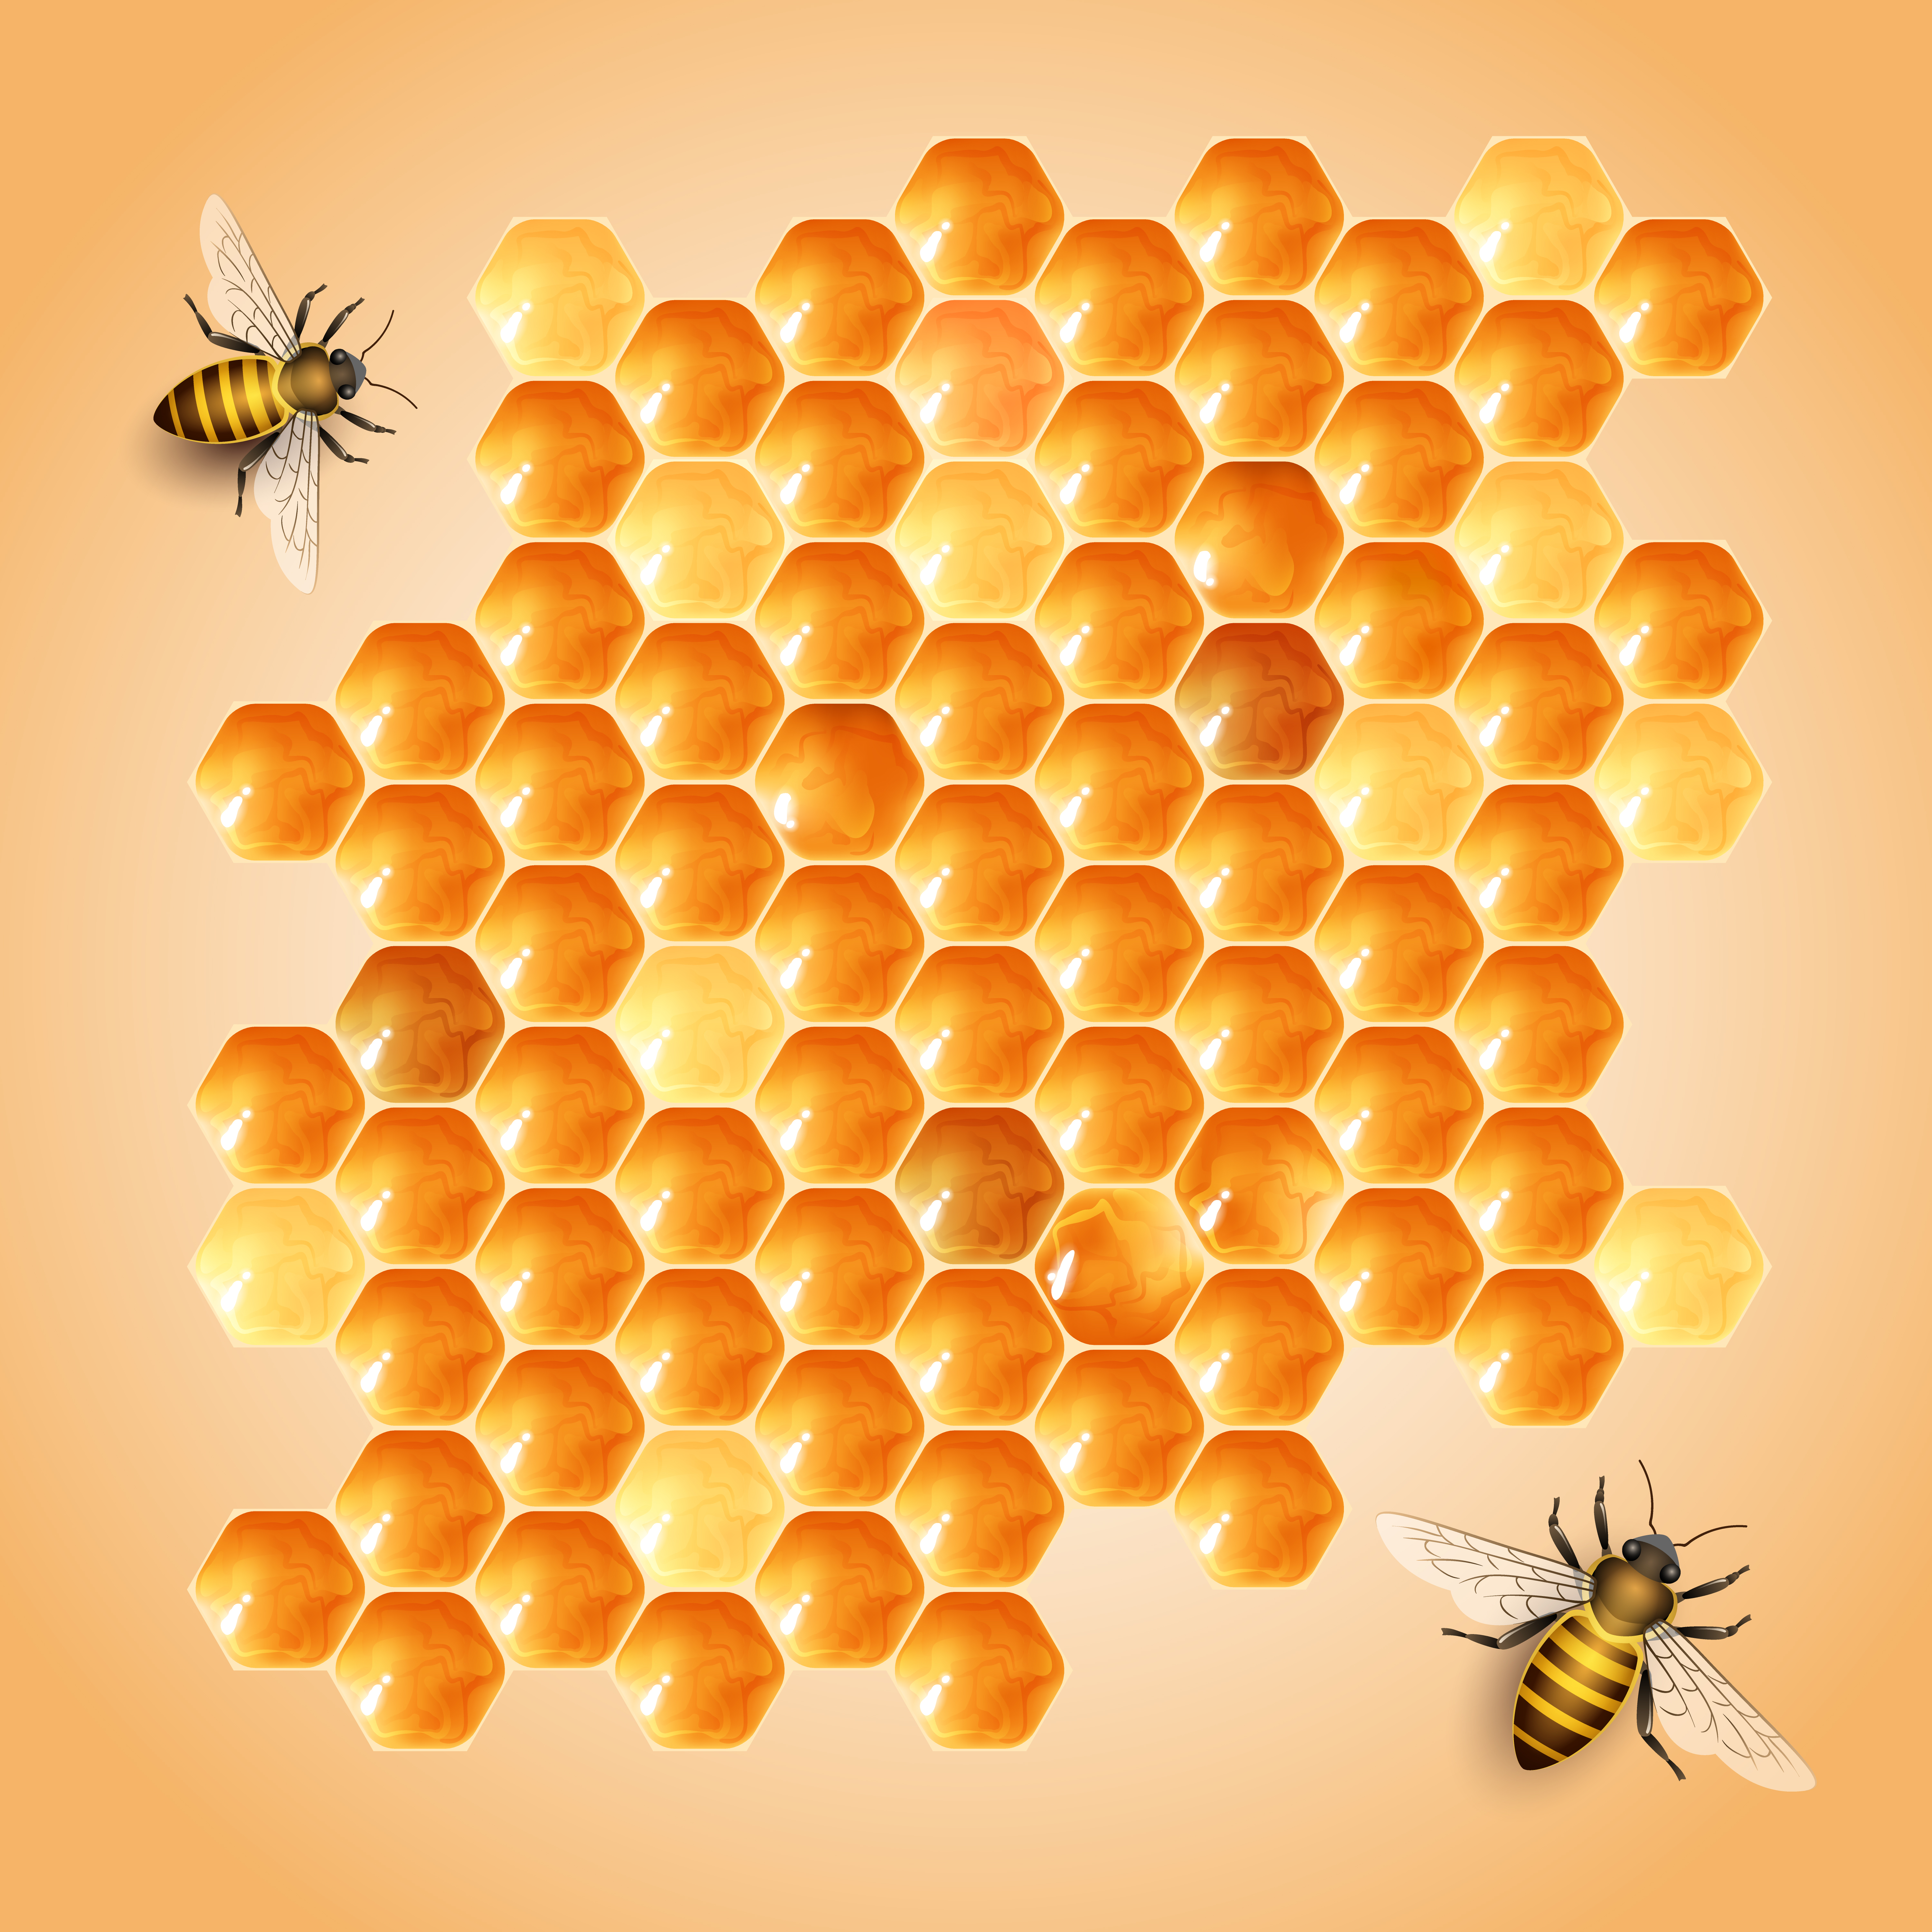 vector background bee hive  yellow  honeycomb  honey